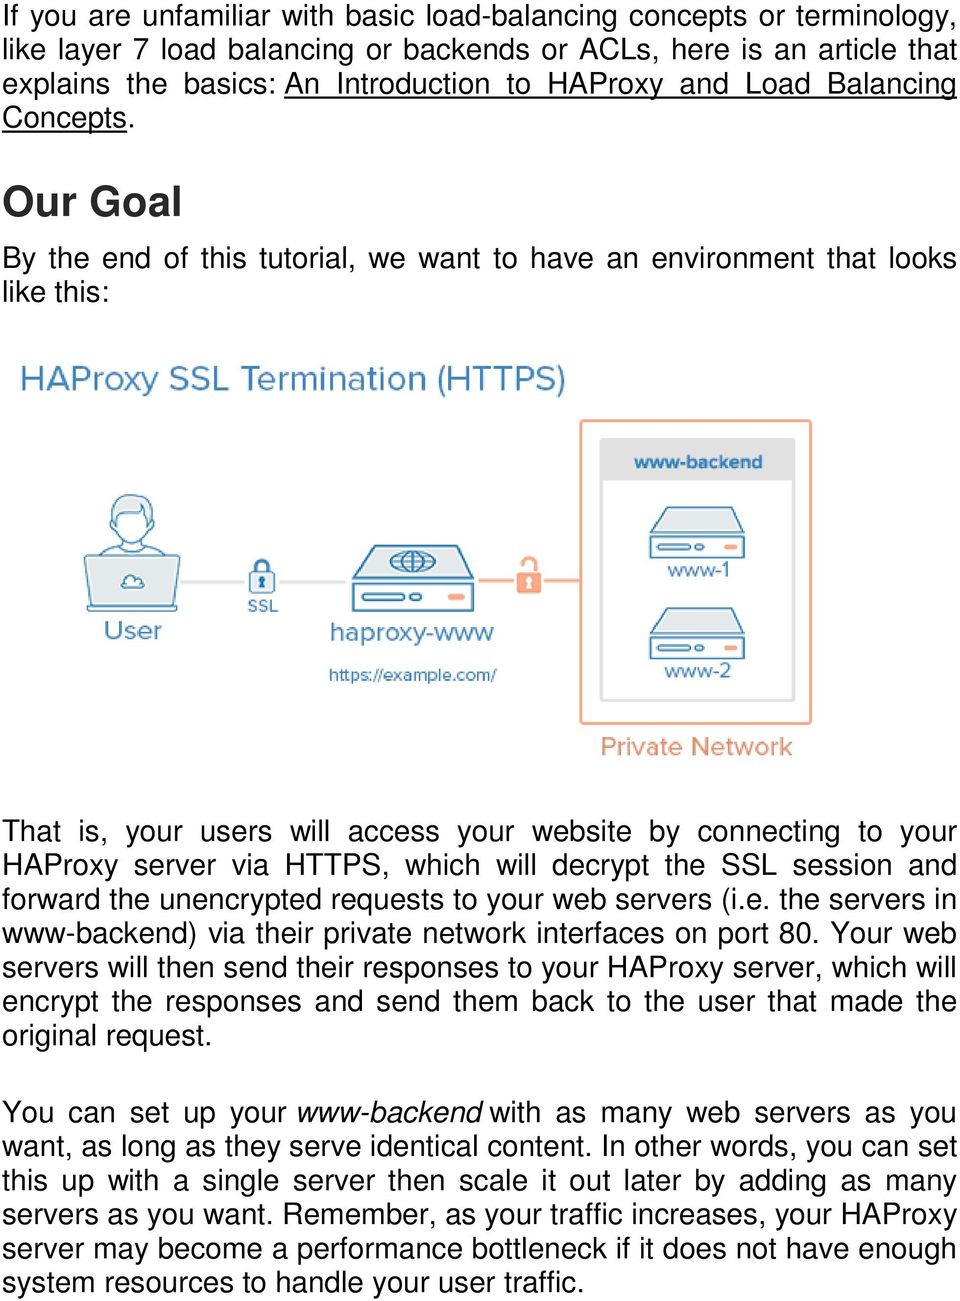 Our Goal By the end of this tutorial, we want to have an environment that looks like this: That is, your users will access your website by connecting to your HAProxy server via HTTPS, which will